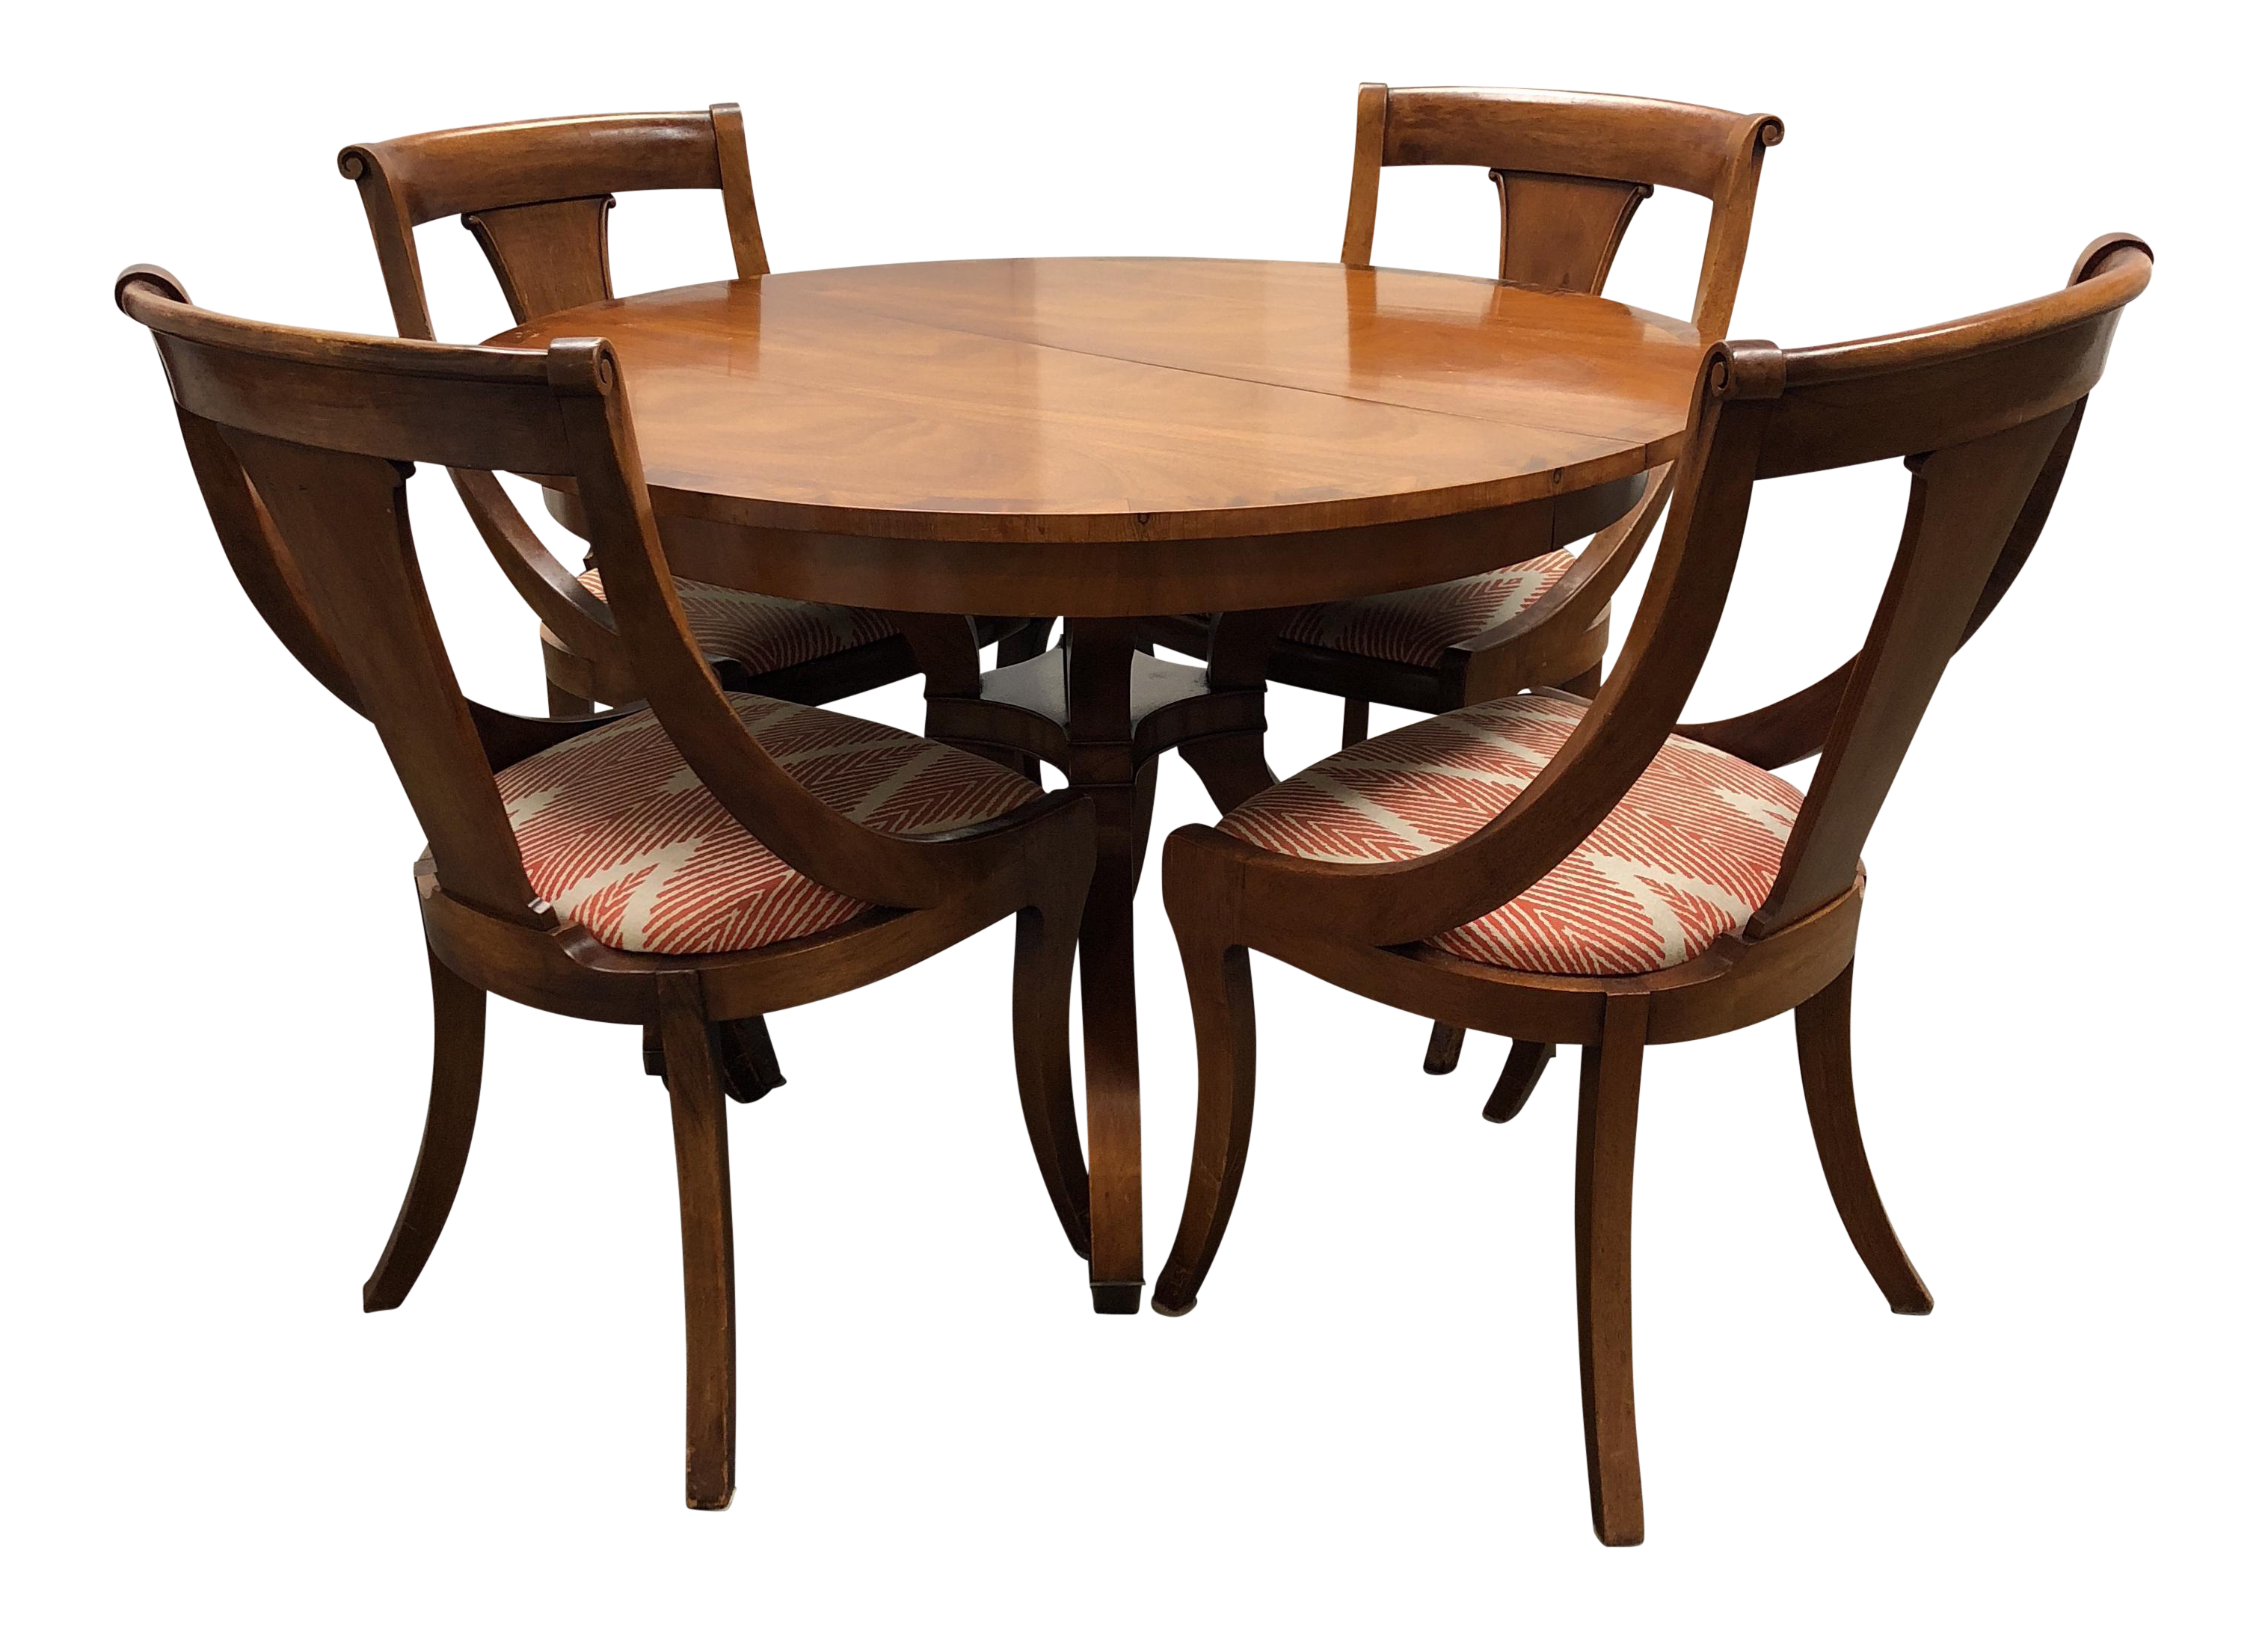 Wonderful Vintage Wood Dining Table + Four Chairs   Dining Set   Image 1 Of 7